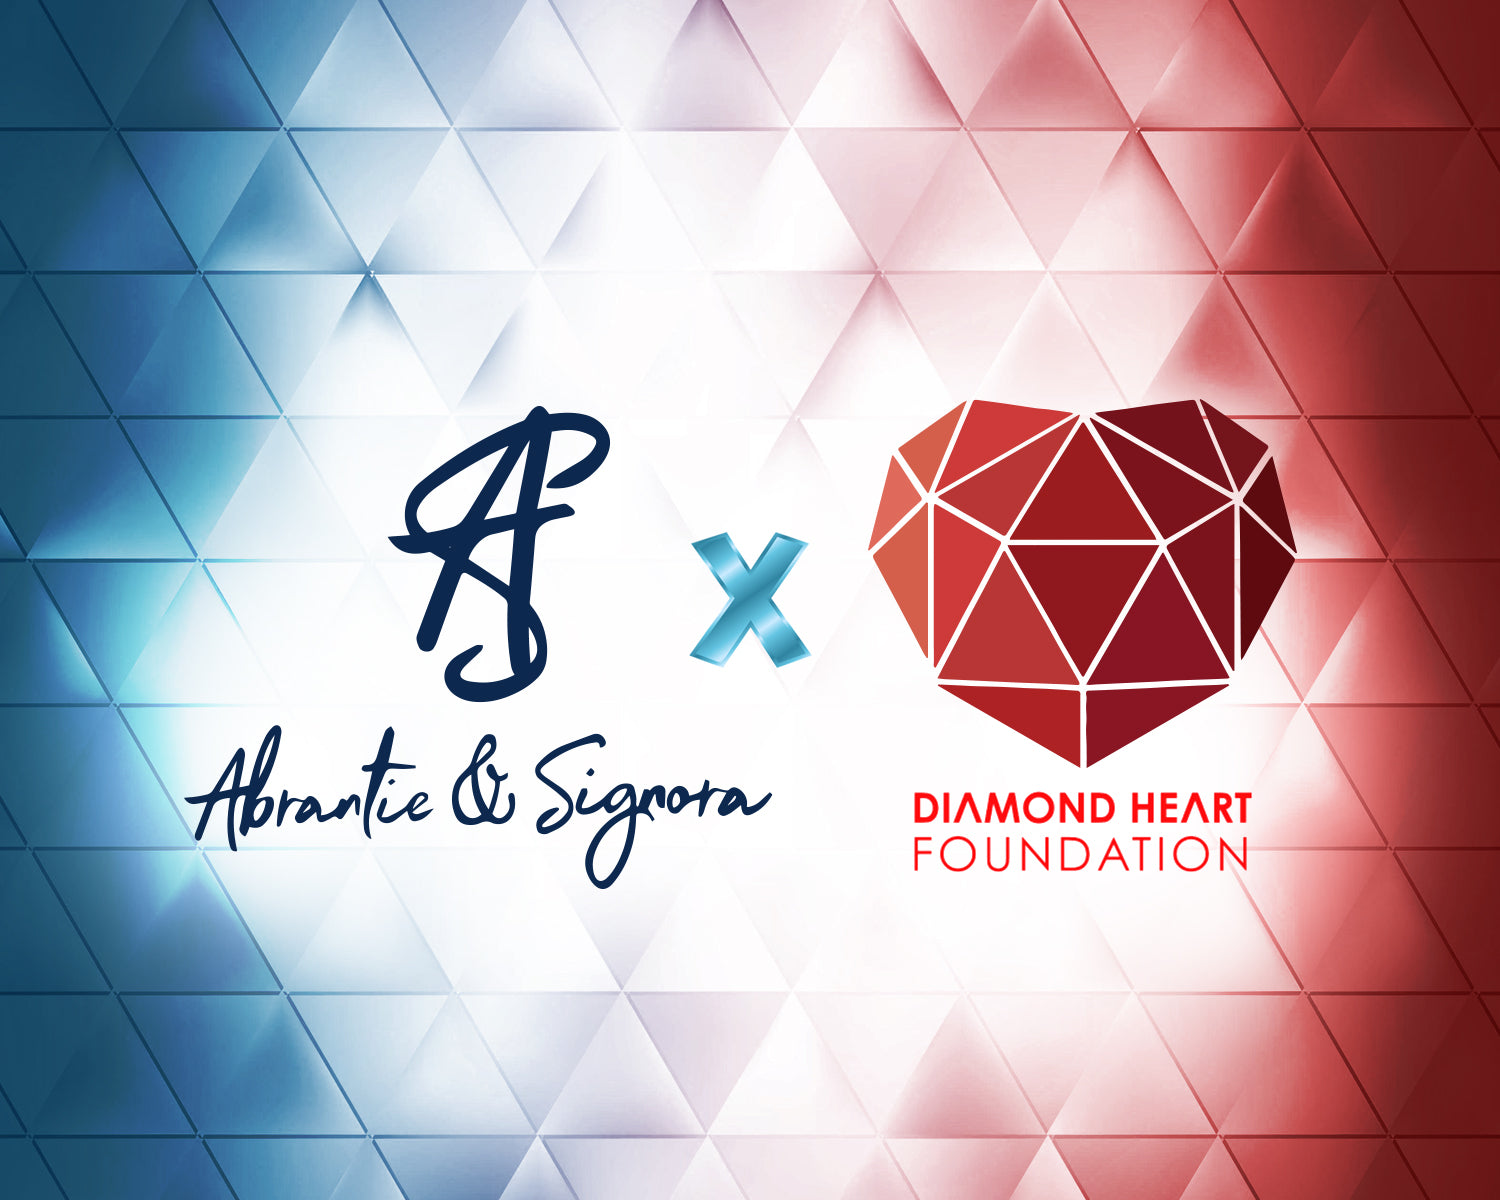 DIAMOND HEART FOUNDATION PARTNERSHIP!